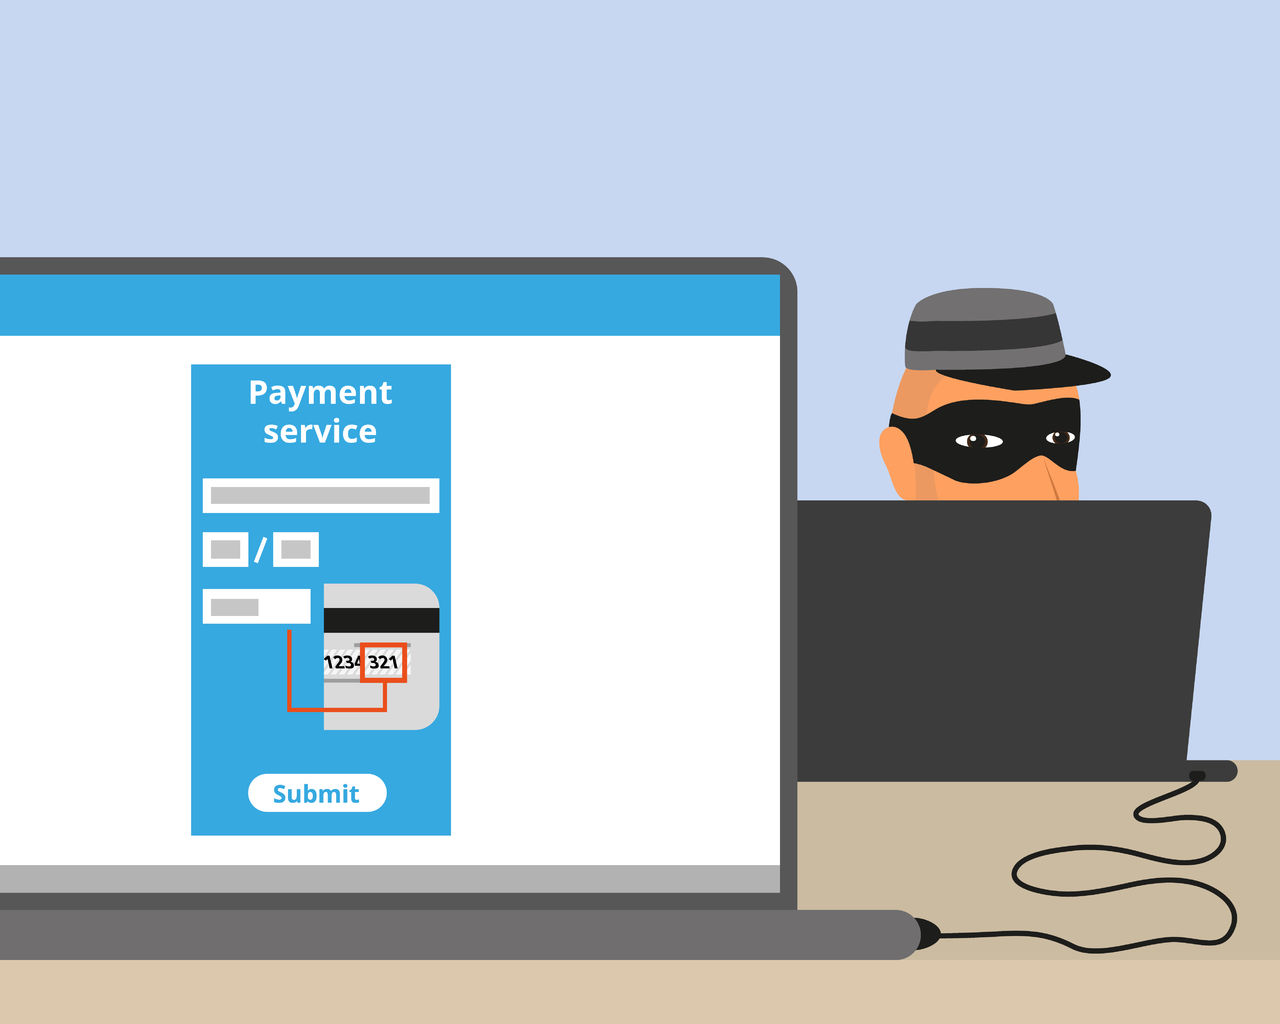 https://www.paynetsecure.net/wp-content/uploads/2020/11/Faced-with-Chargebacks-You-are-Not-Alone.jpg